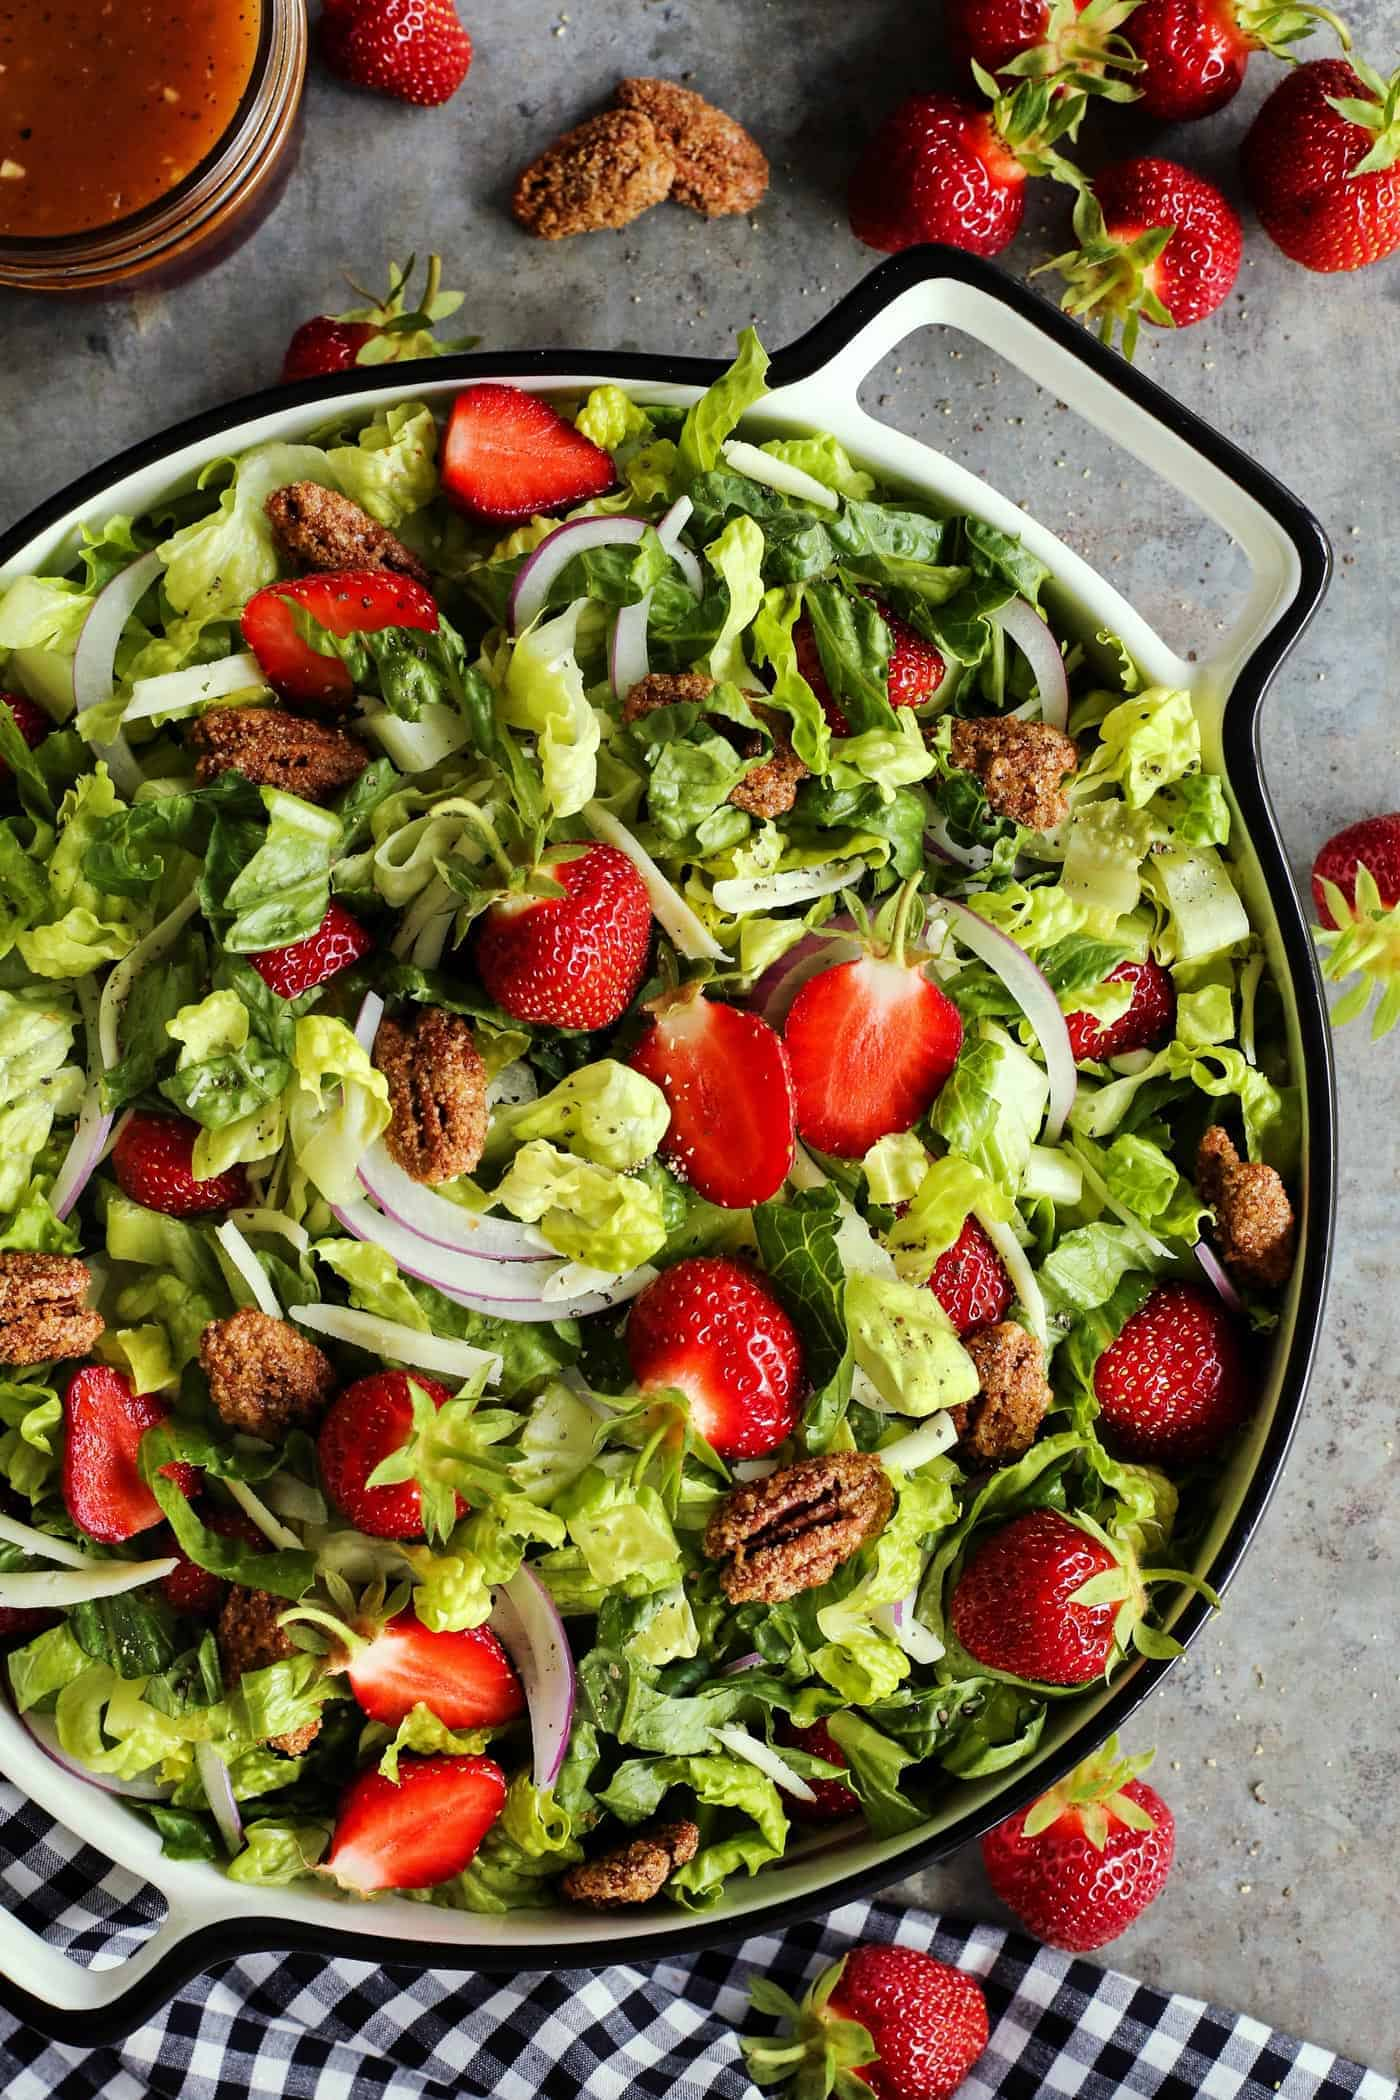 Strawberry Salad with Candied Pecans and Red Wine Vinaigrette